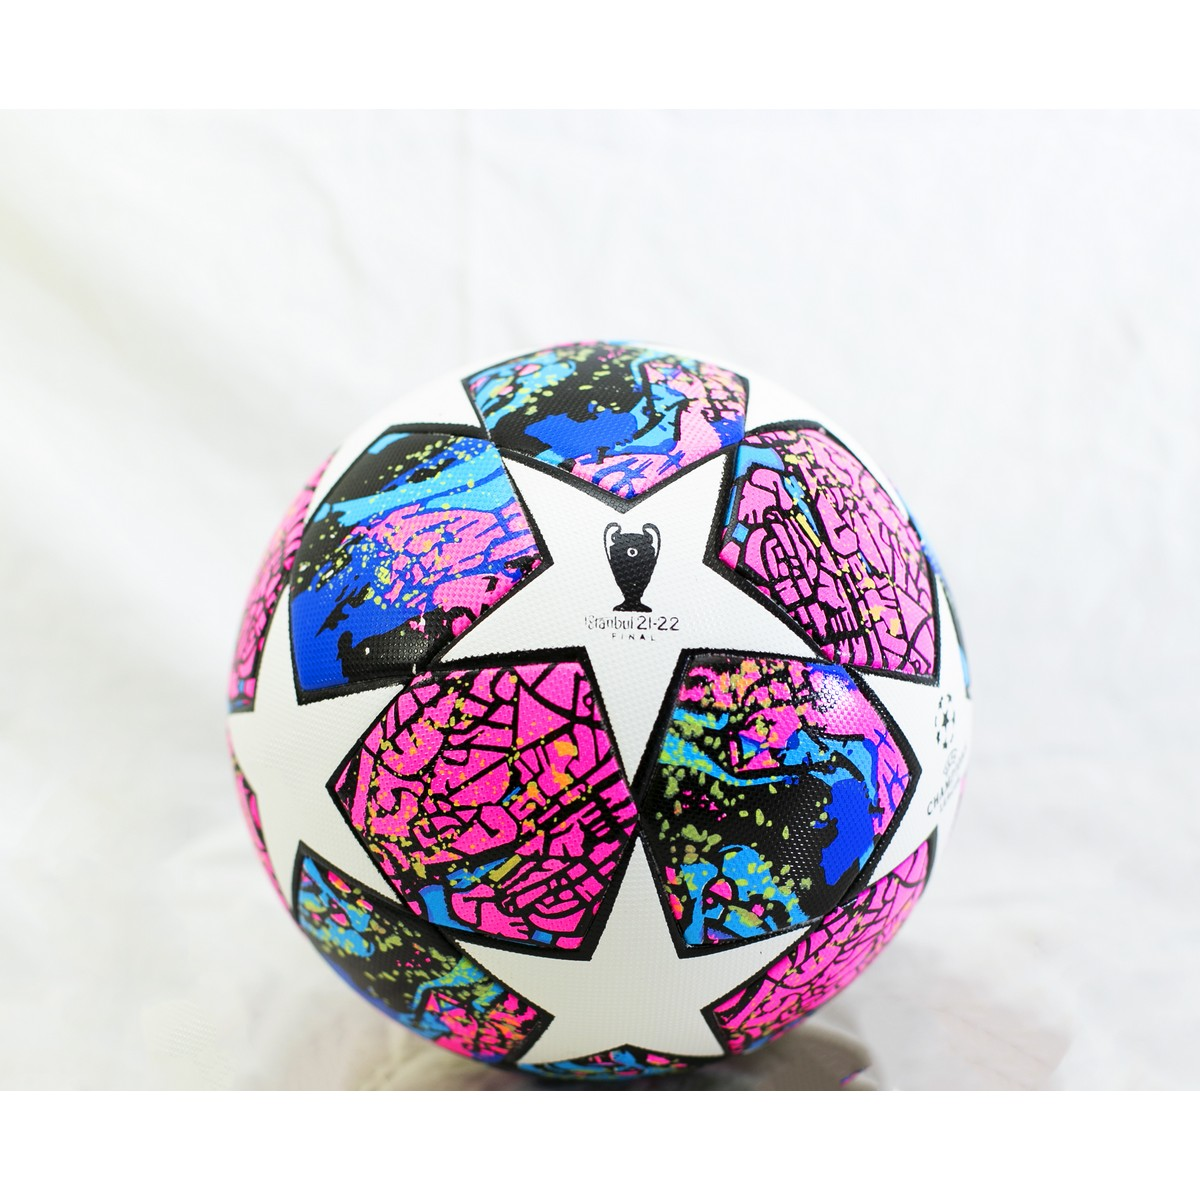 Football Size 5 Thermal Moulded Export Quality Champion League Version